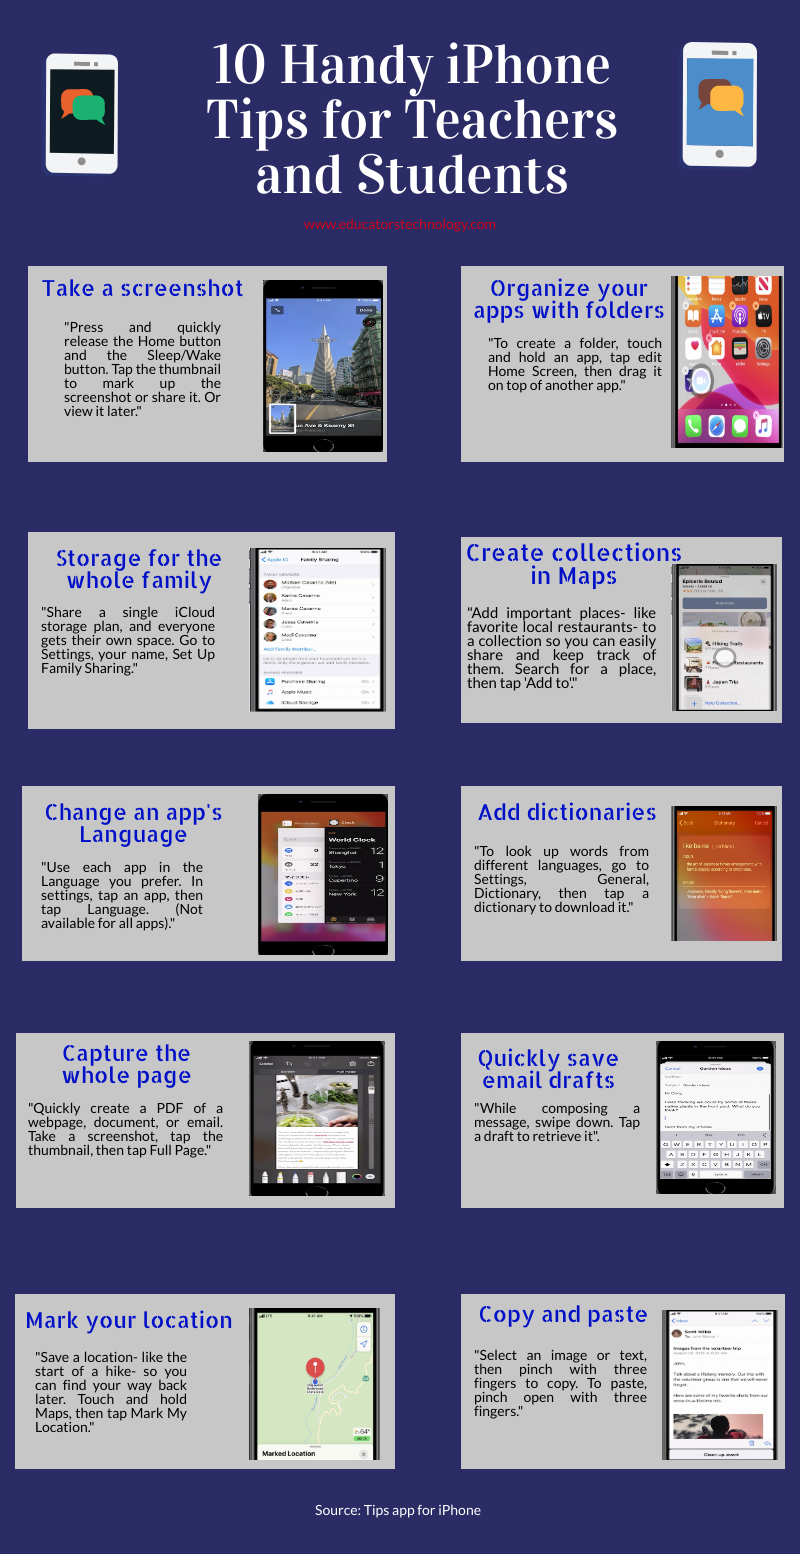 10 Handy iPhone Tips for Teachers and Students